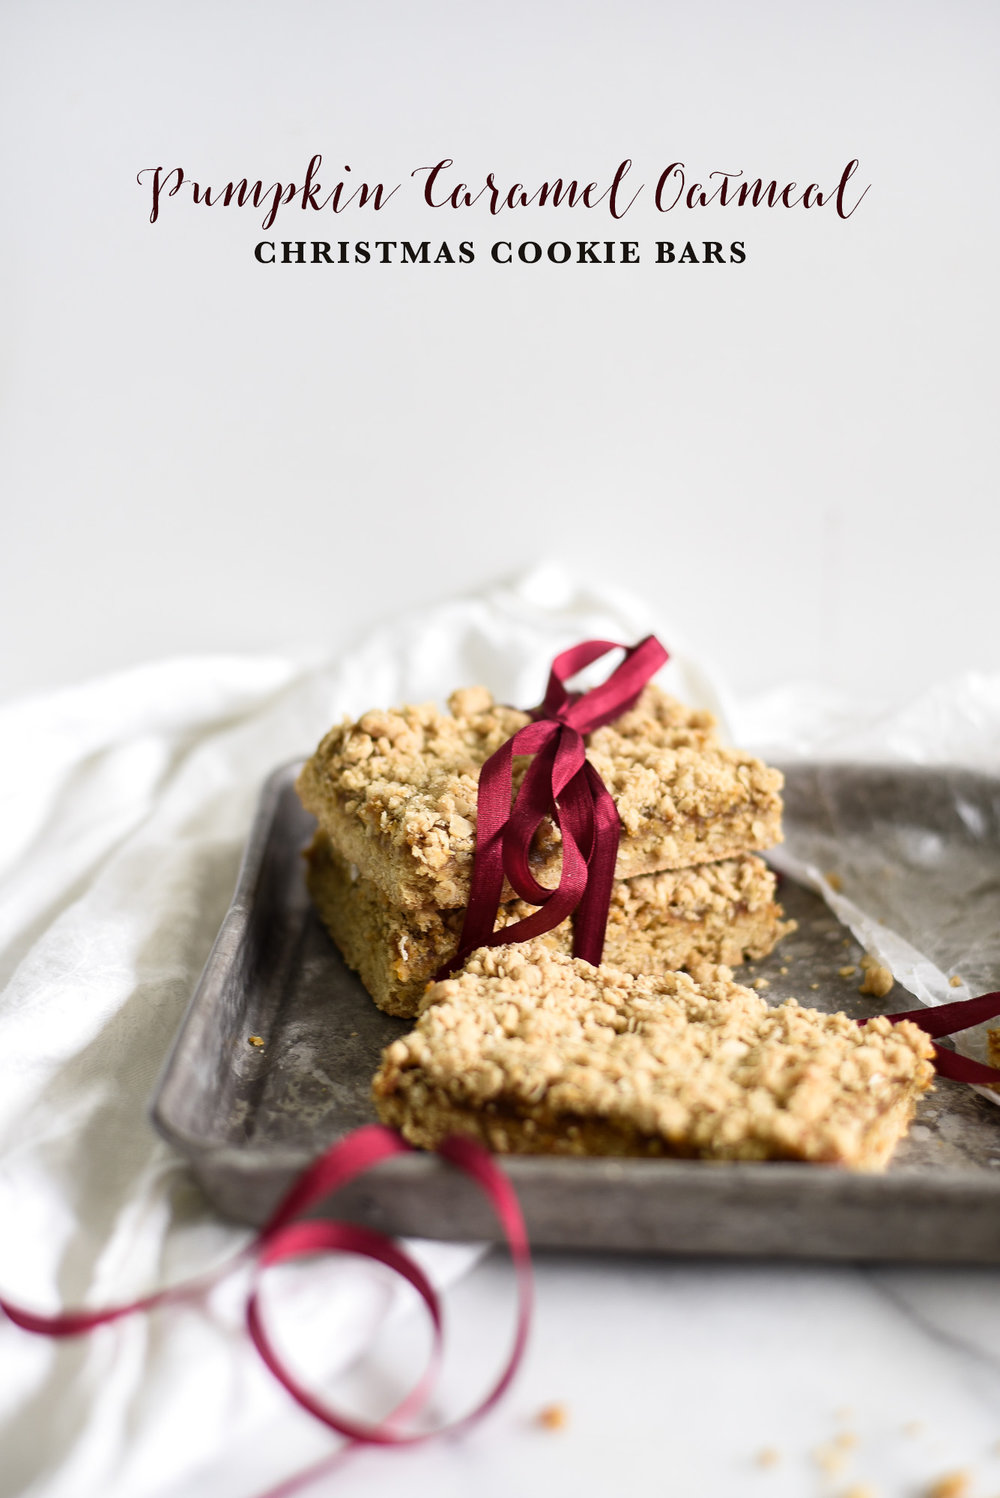 Christmas Cookies & Bars | 8 Classic Holiday Dessert Recipes to try!  boxwoodavenue.com